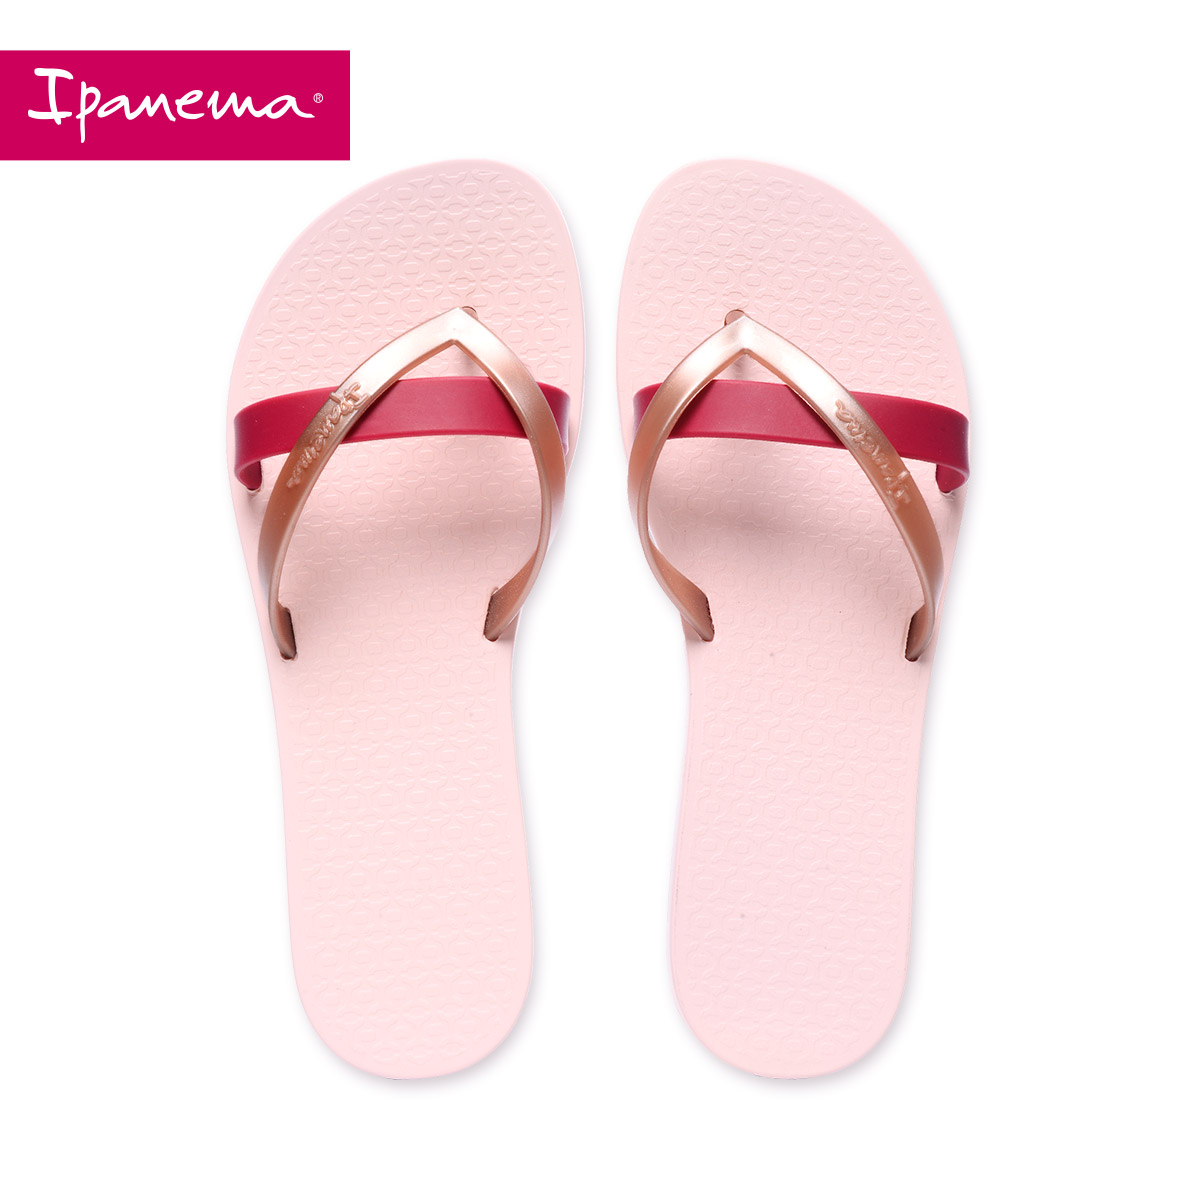 Summer sandals for women fashionable and beautiful: models, photos 43